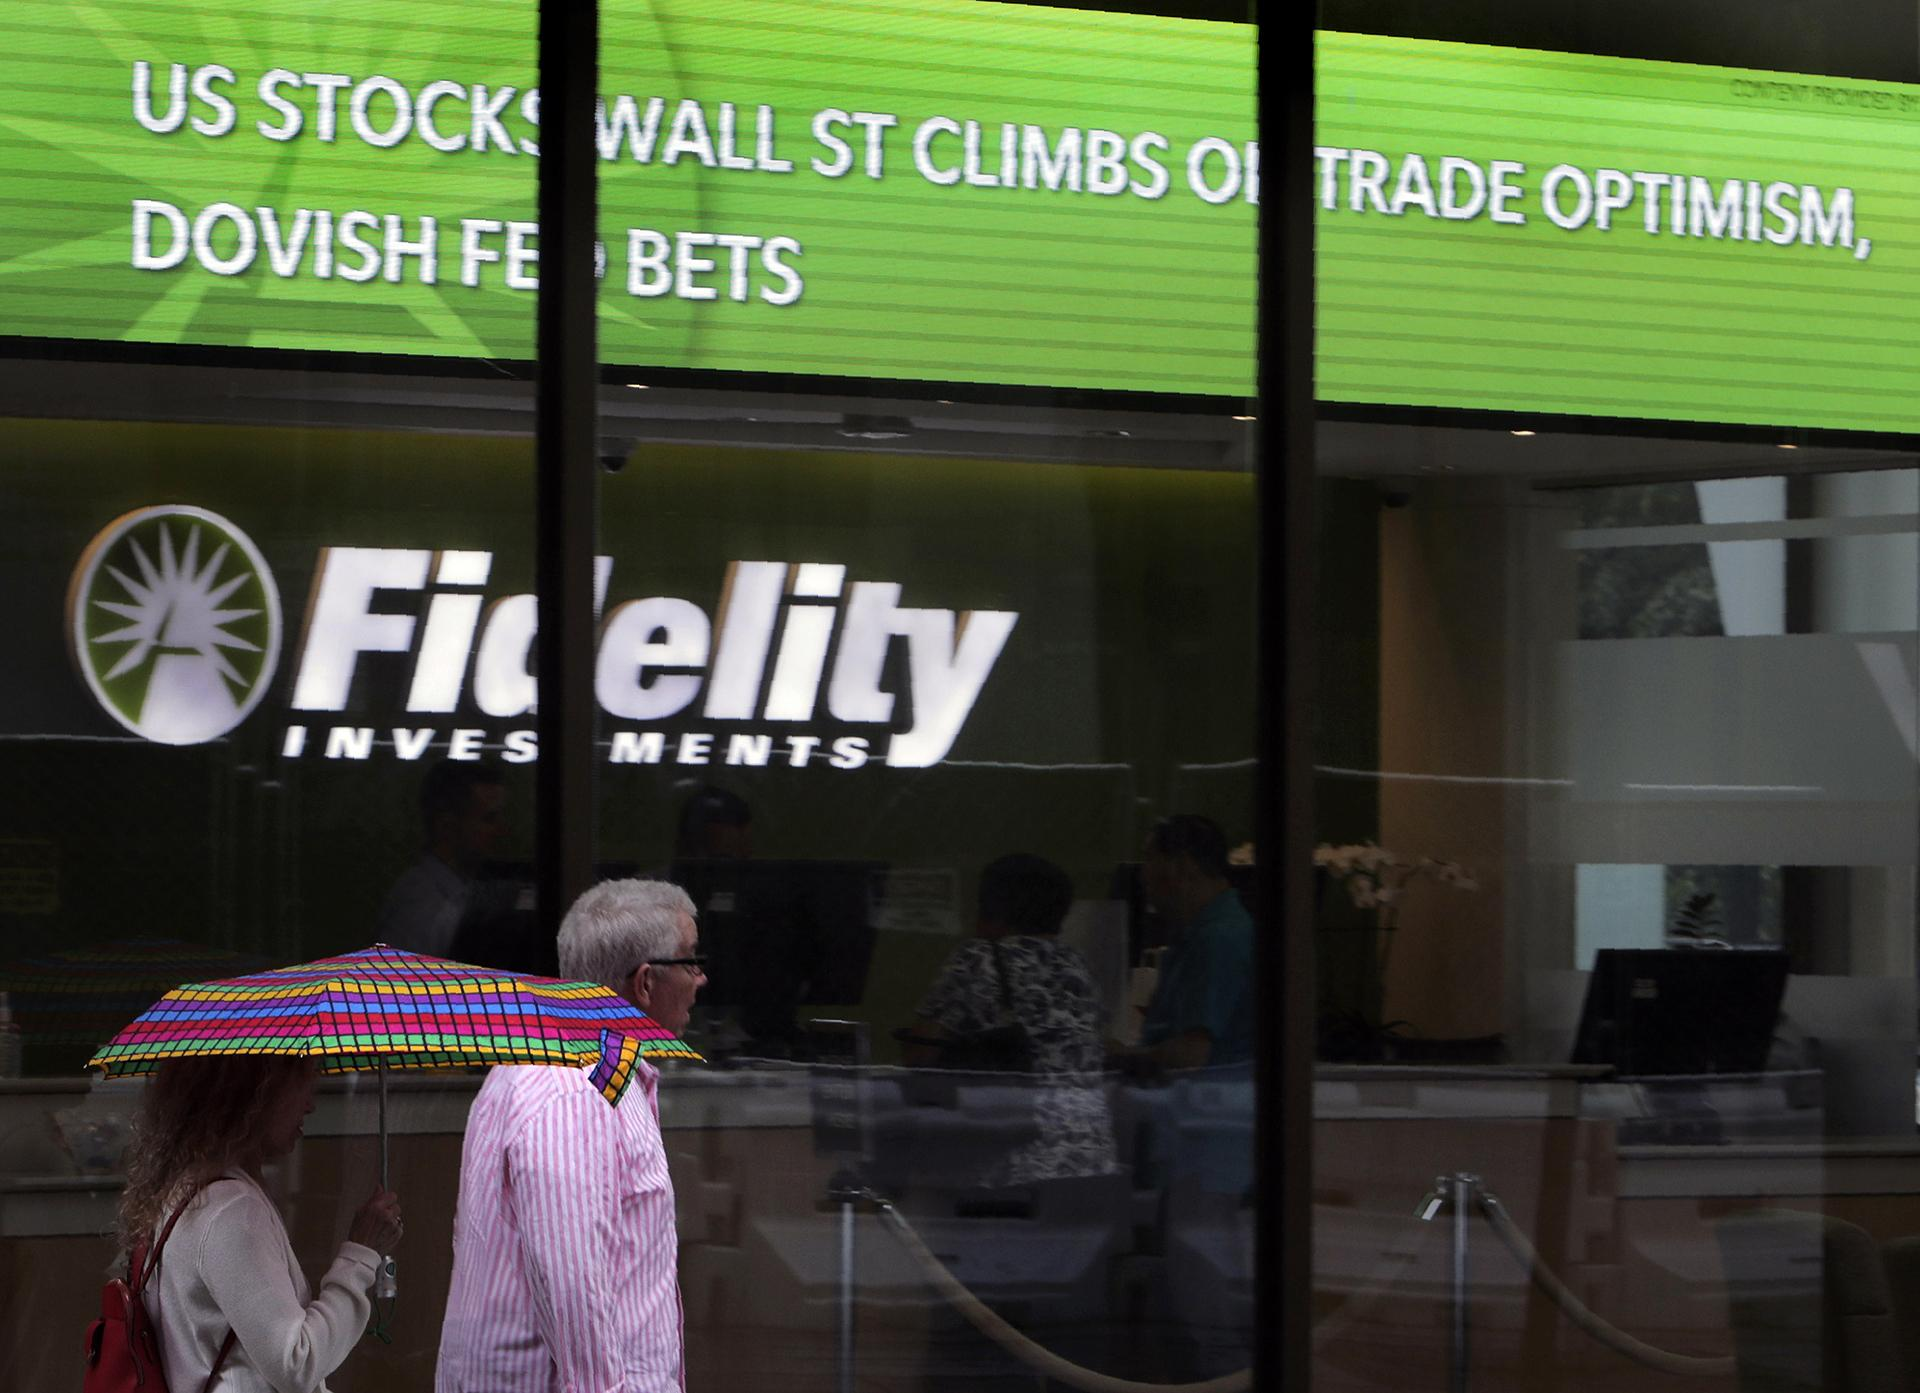 In this June 18, 2019, photo people walk past Fidelity Investments news scroll board, showing a favorable outlook in the US stock markets, in the Financial District of Boston. (AP Photo / Charles Krupa)